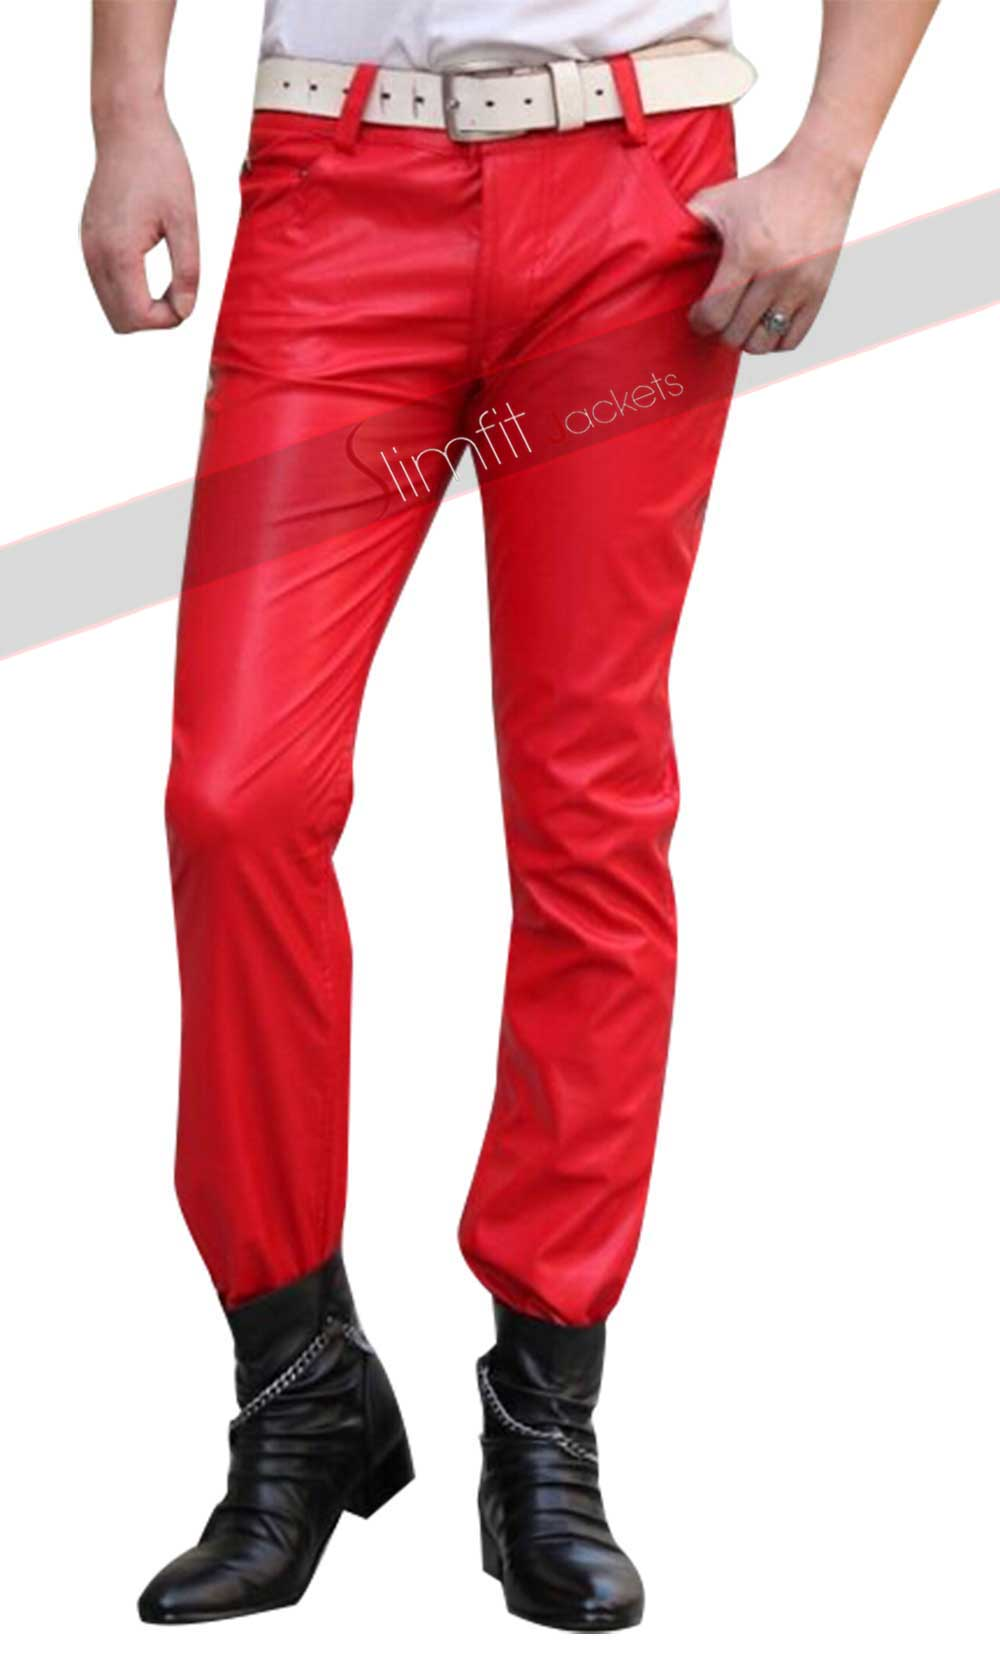 d659228c00ee8 2015 Fashion Sweatpants Men Hip Hop Red Leather Pant. $150. 0